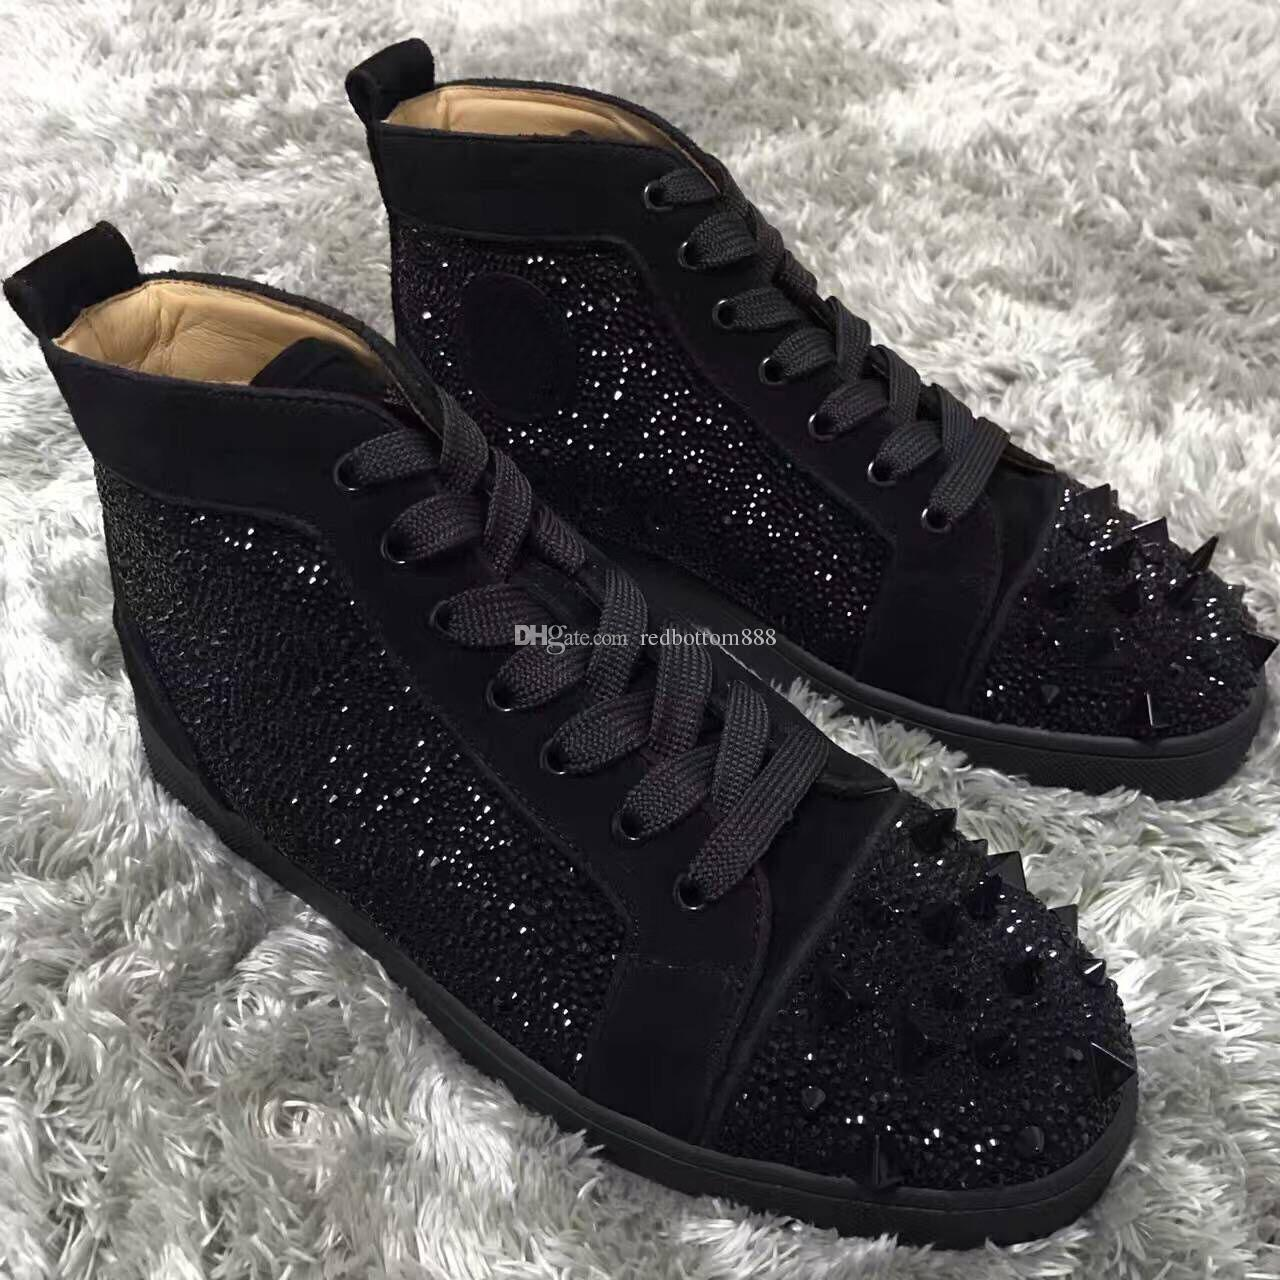 Brand Designer High Top Red Bottom Mens Luxury Pik Pik Spikes Men Women Suede Leather Strass Sneakers Lace Up Casual Shoes Eu35 46 Free Sh